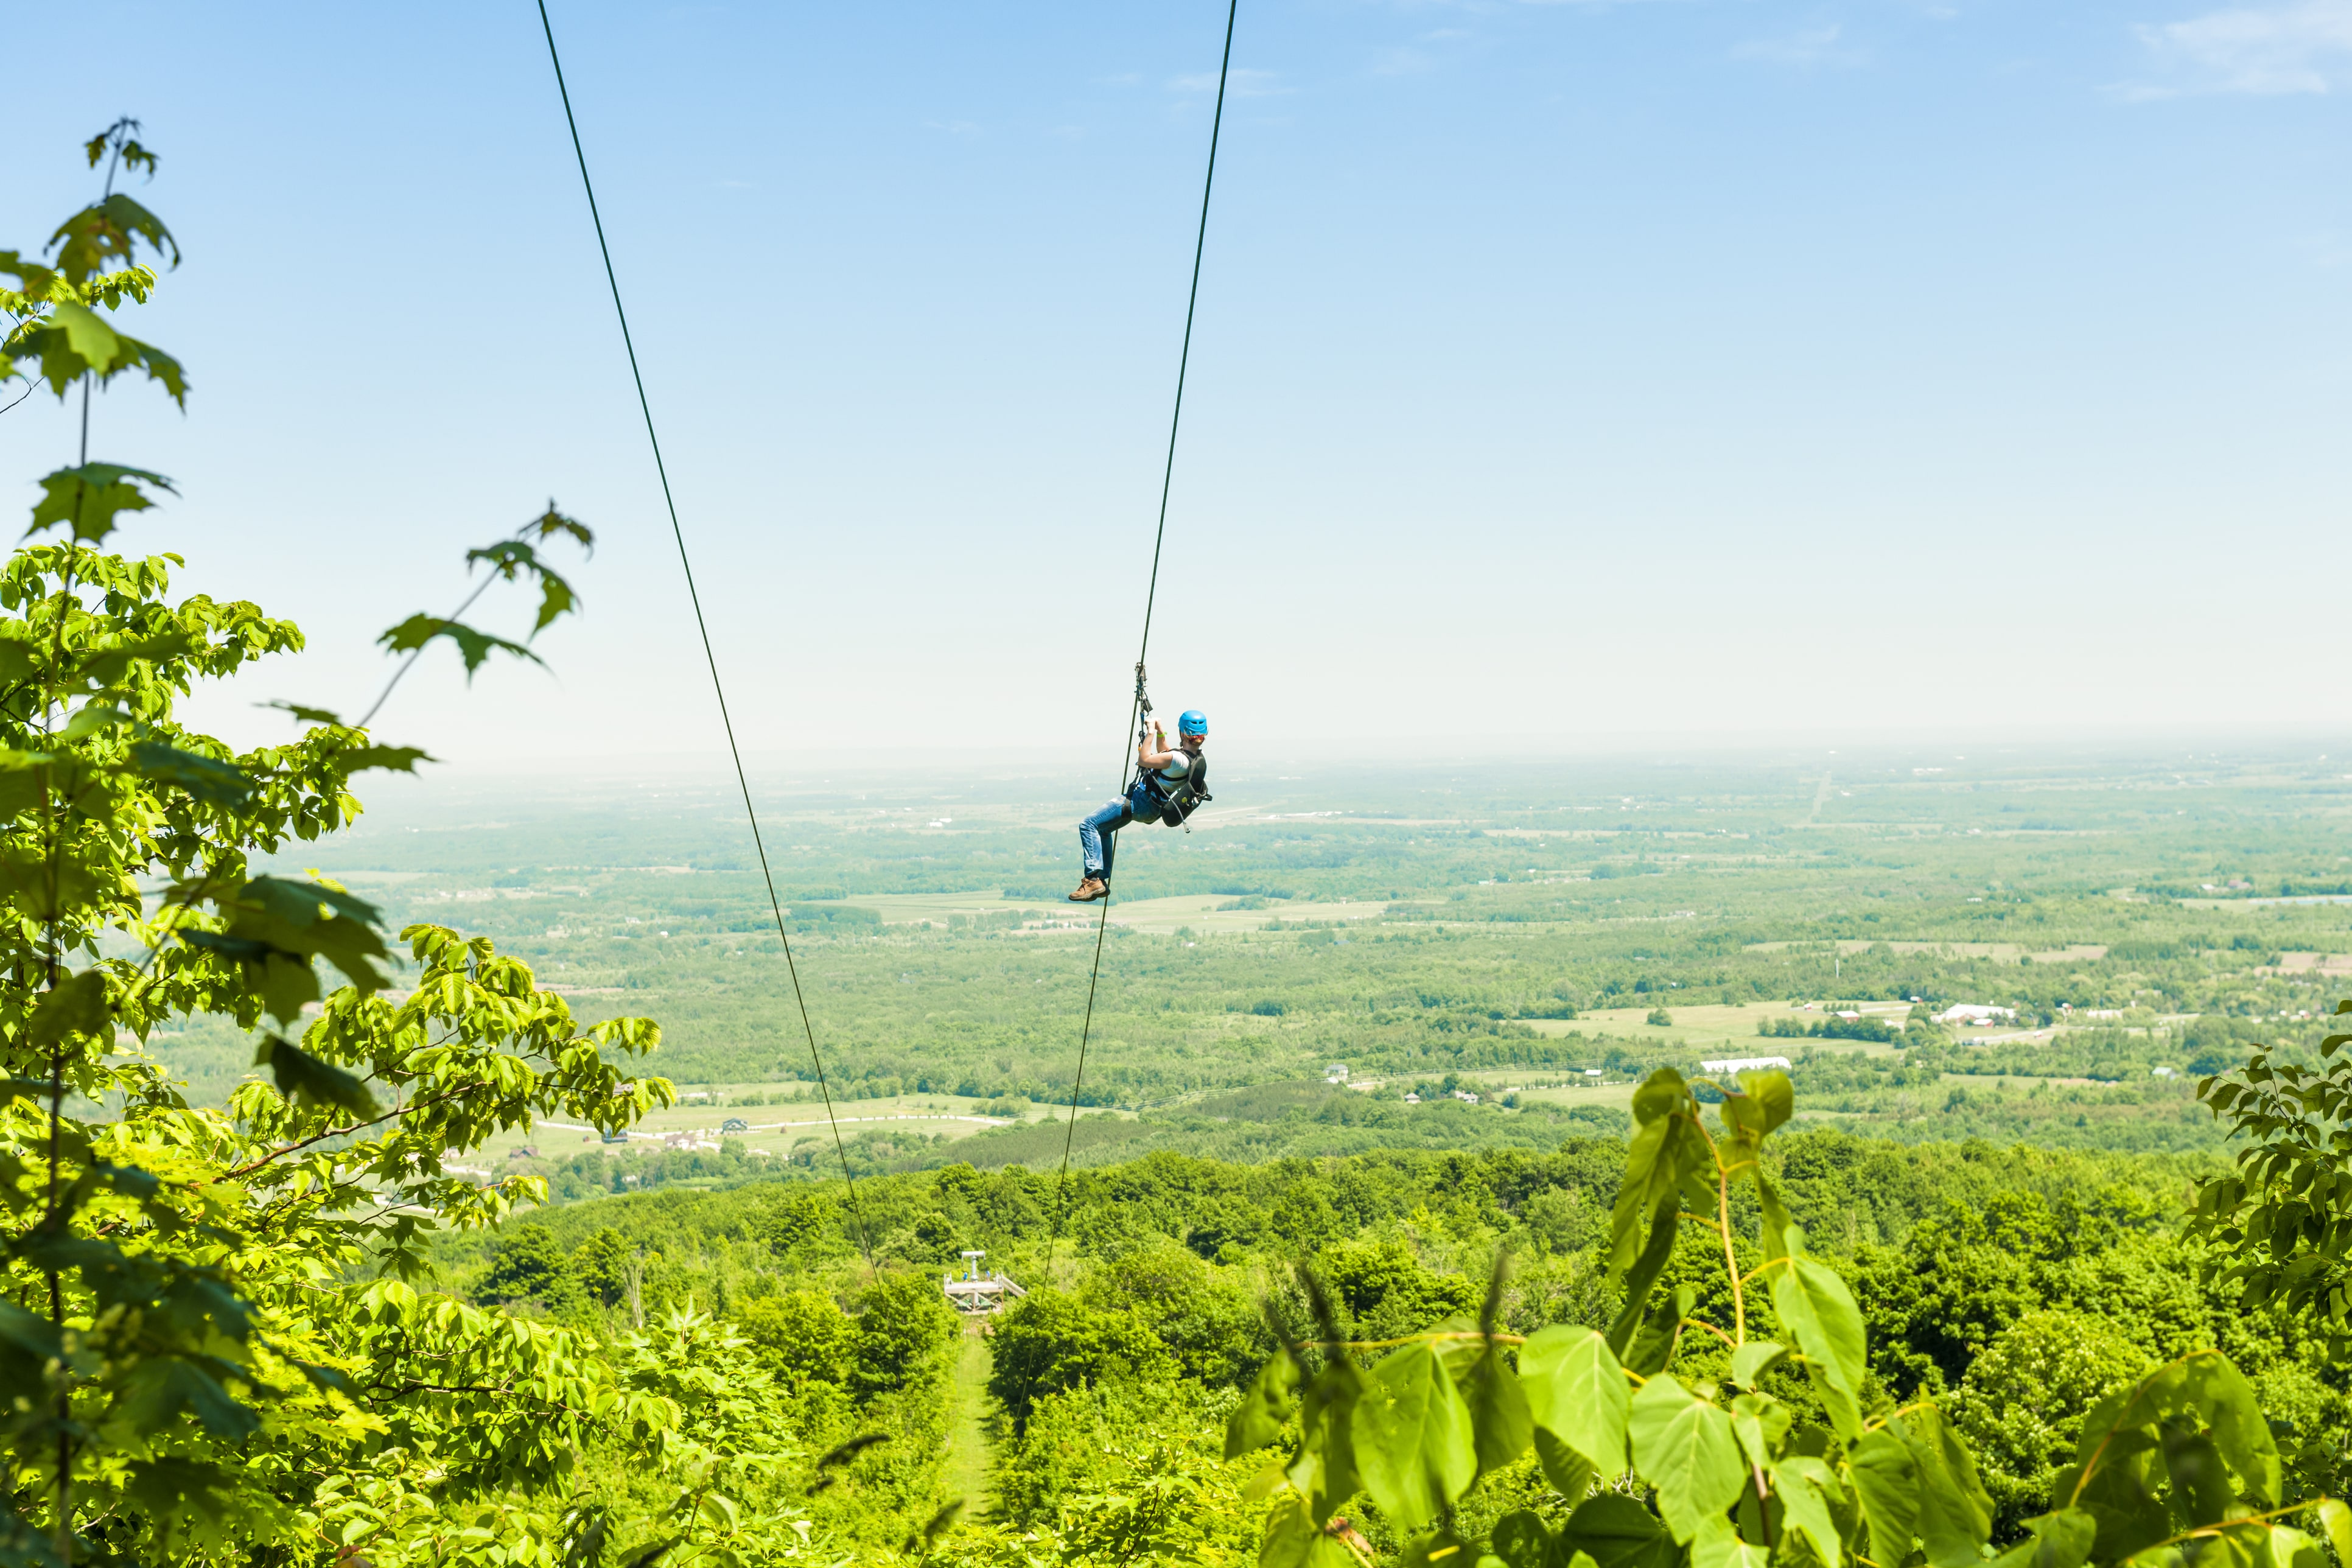 Person zip-lining through valley